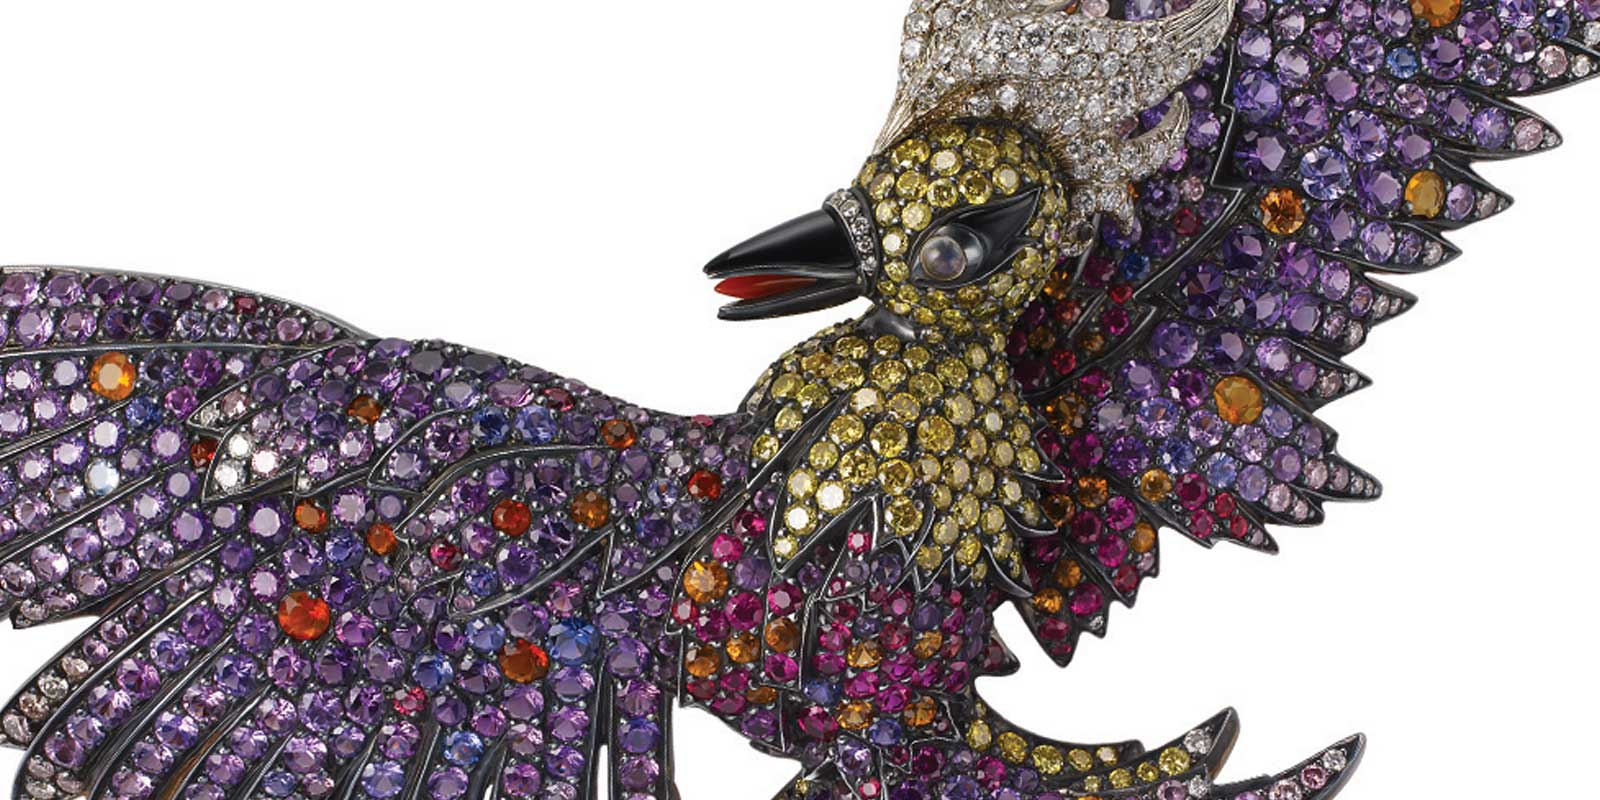 Jewelled brooch with multi-coloured gemstones shaped like a flying bird